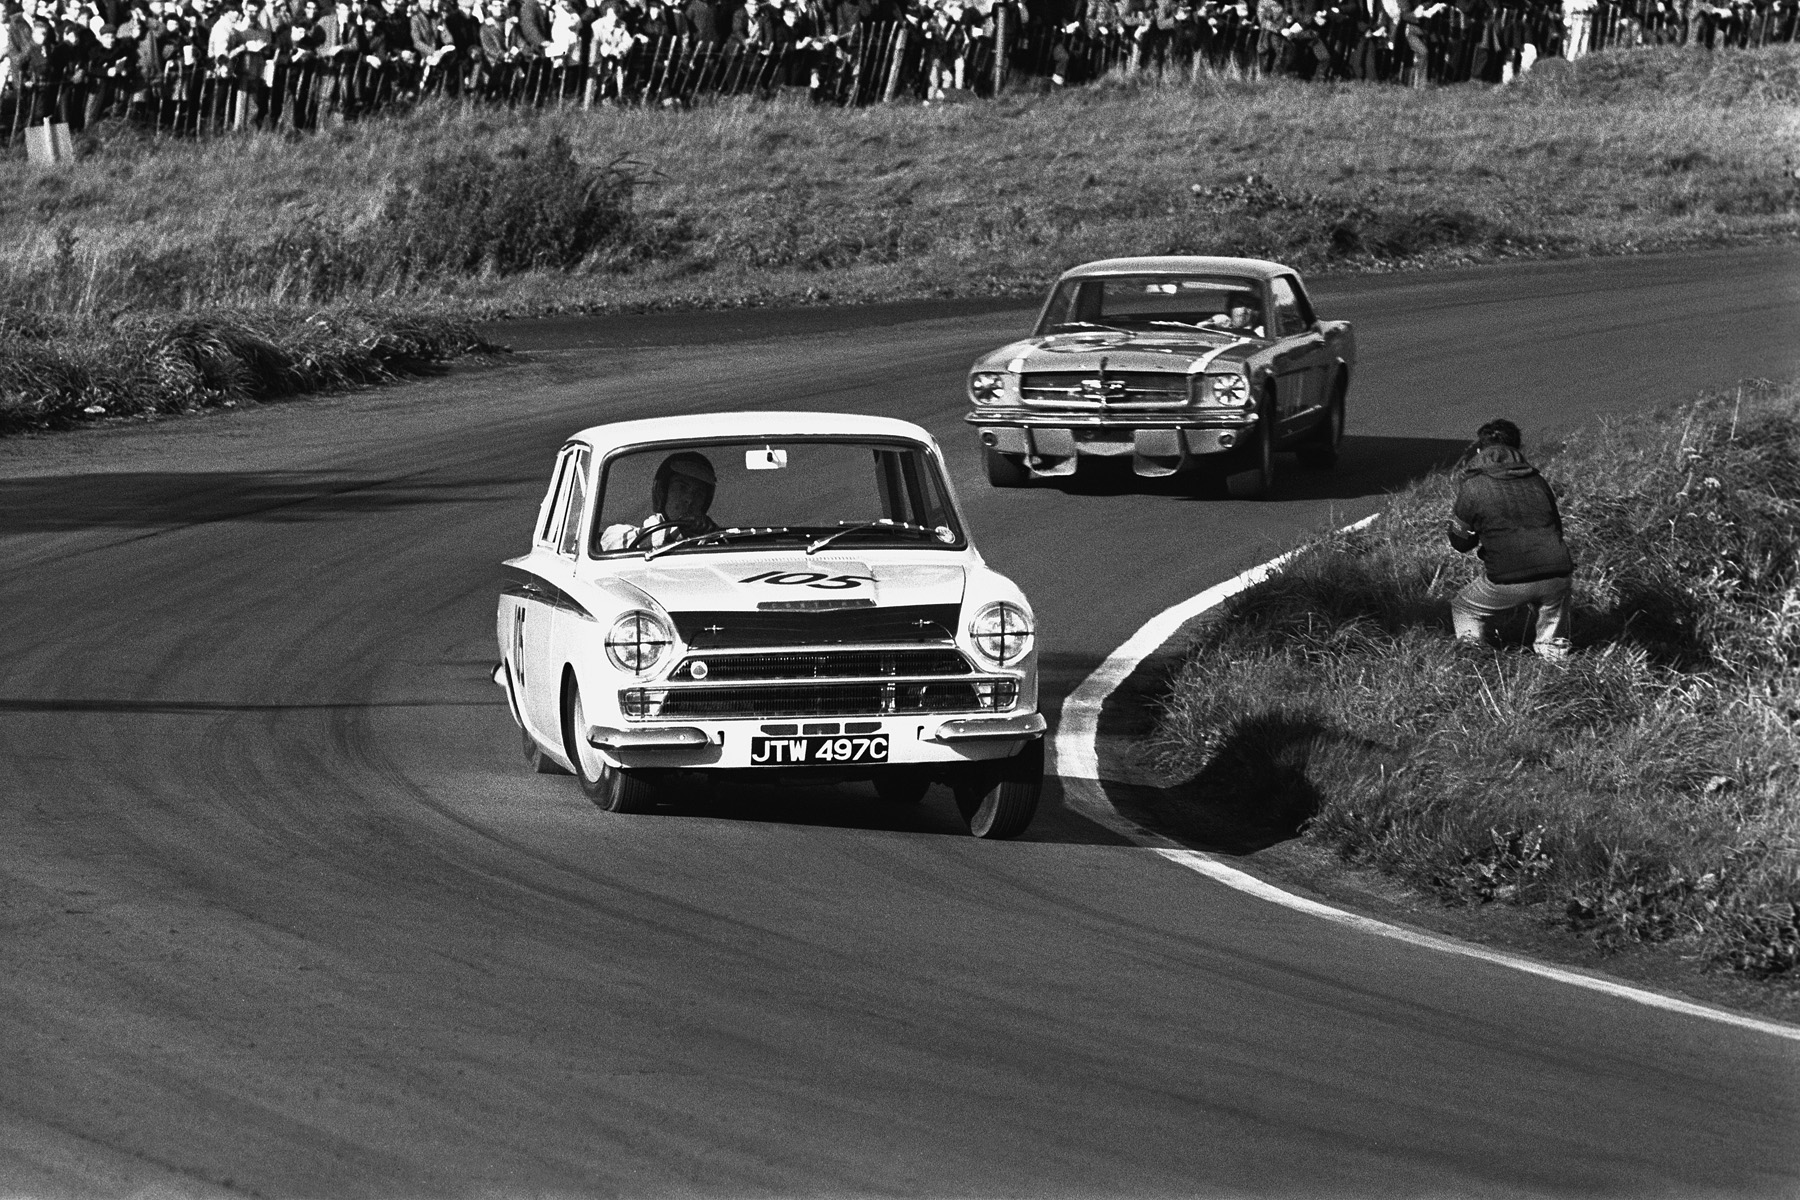 60 YEARS OF THE BTCC TO BE CELEBRATED... | Used Cars NI Blog